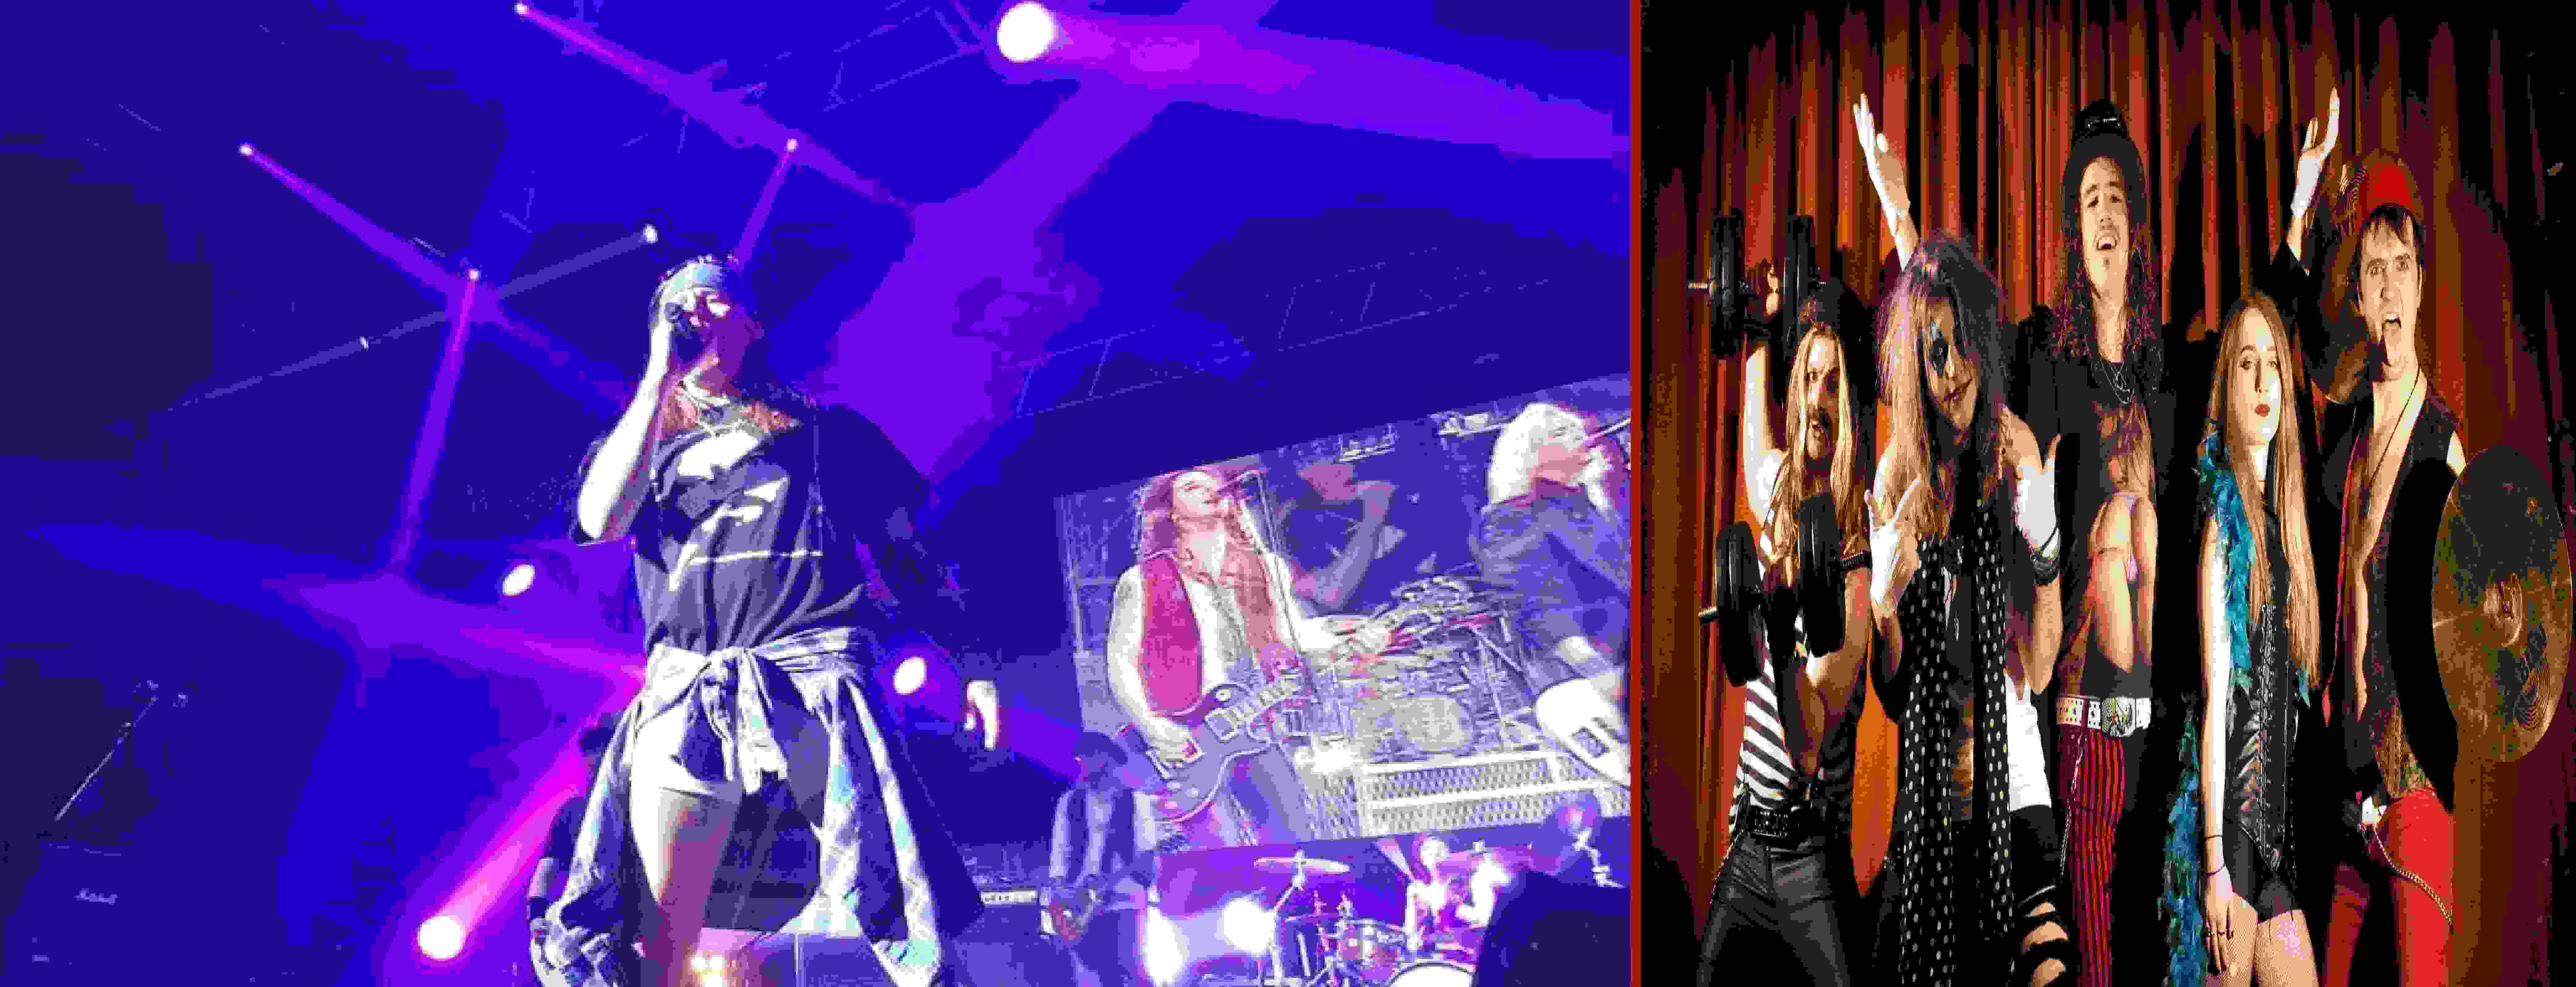 THE GUNS N' ROSES EXPERIENCE plus very special guests SAINTS OF SIN